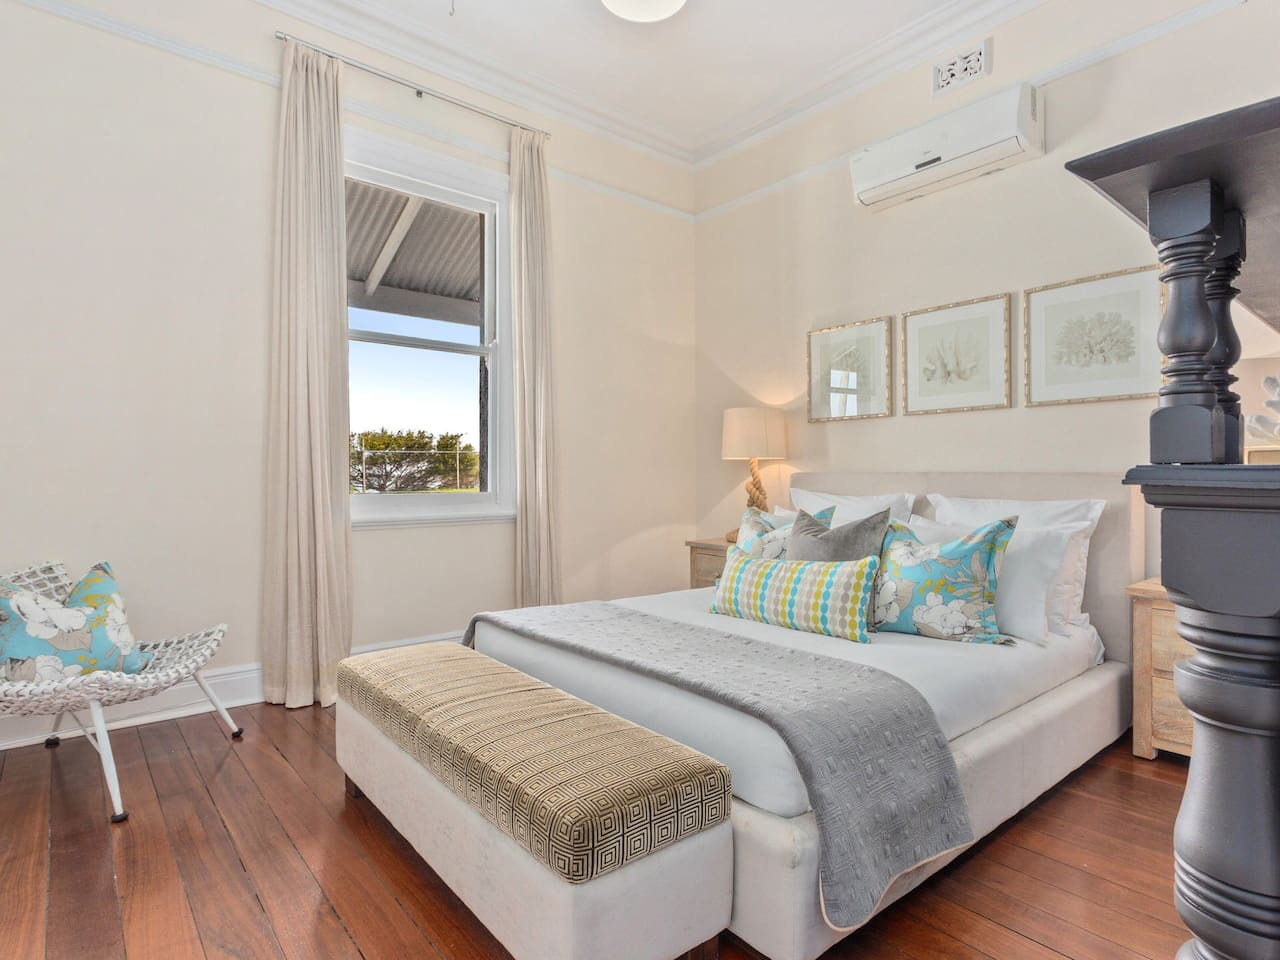 Recharge and unwind in the lavish master suite with plush luxurious linen and a Queen size bed